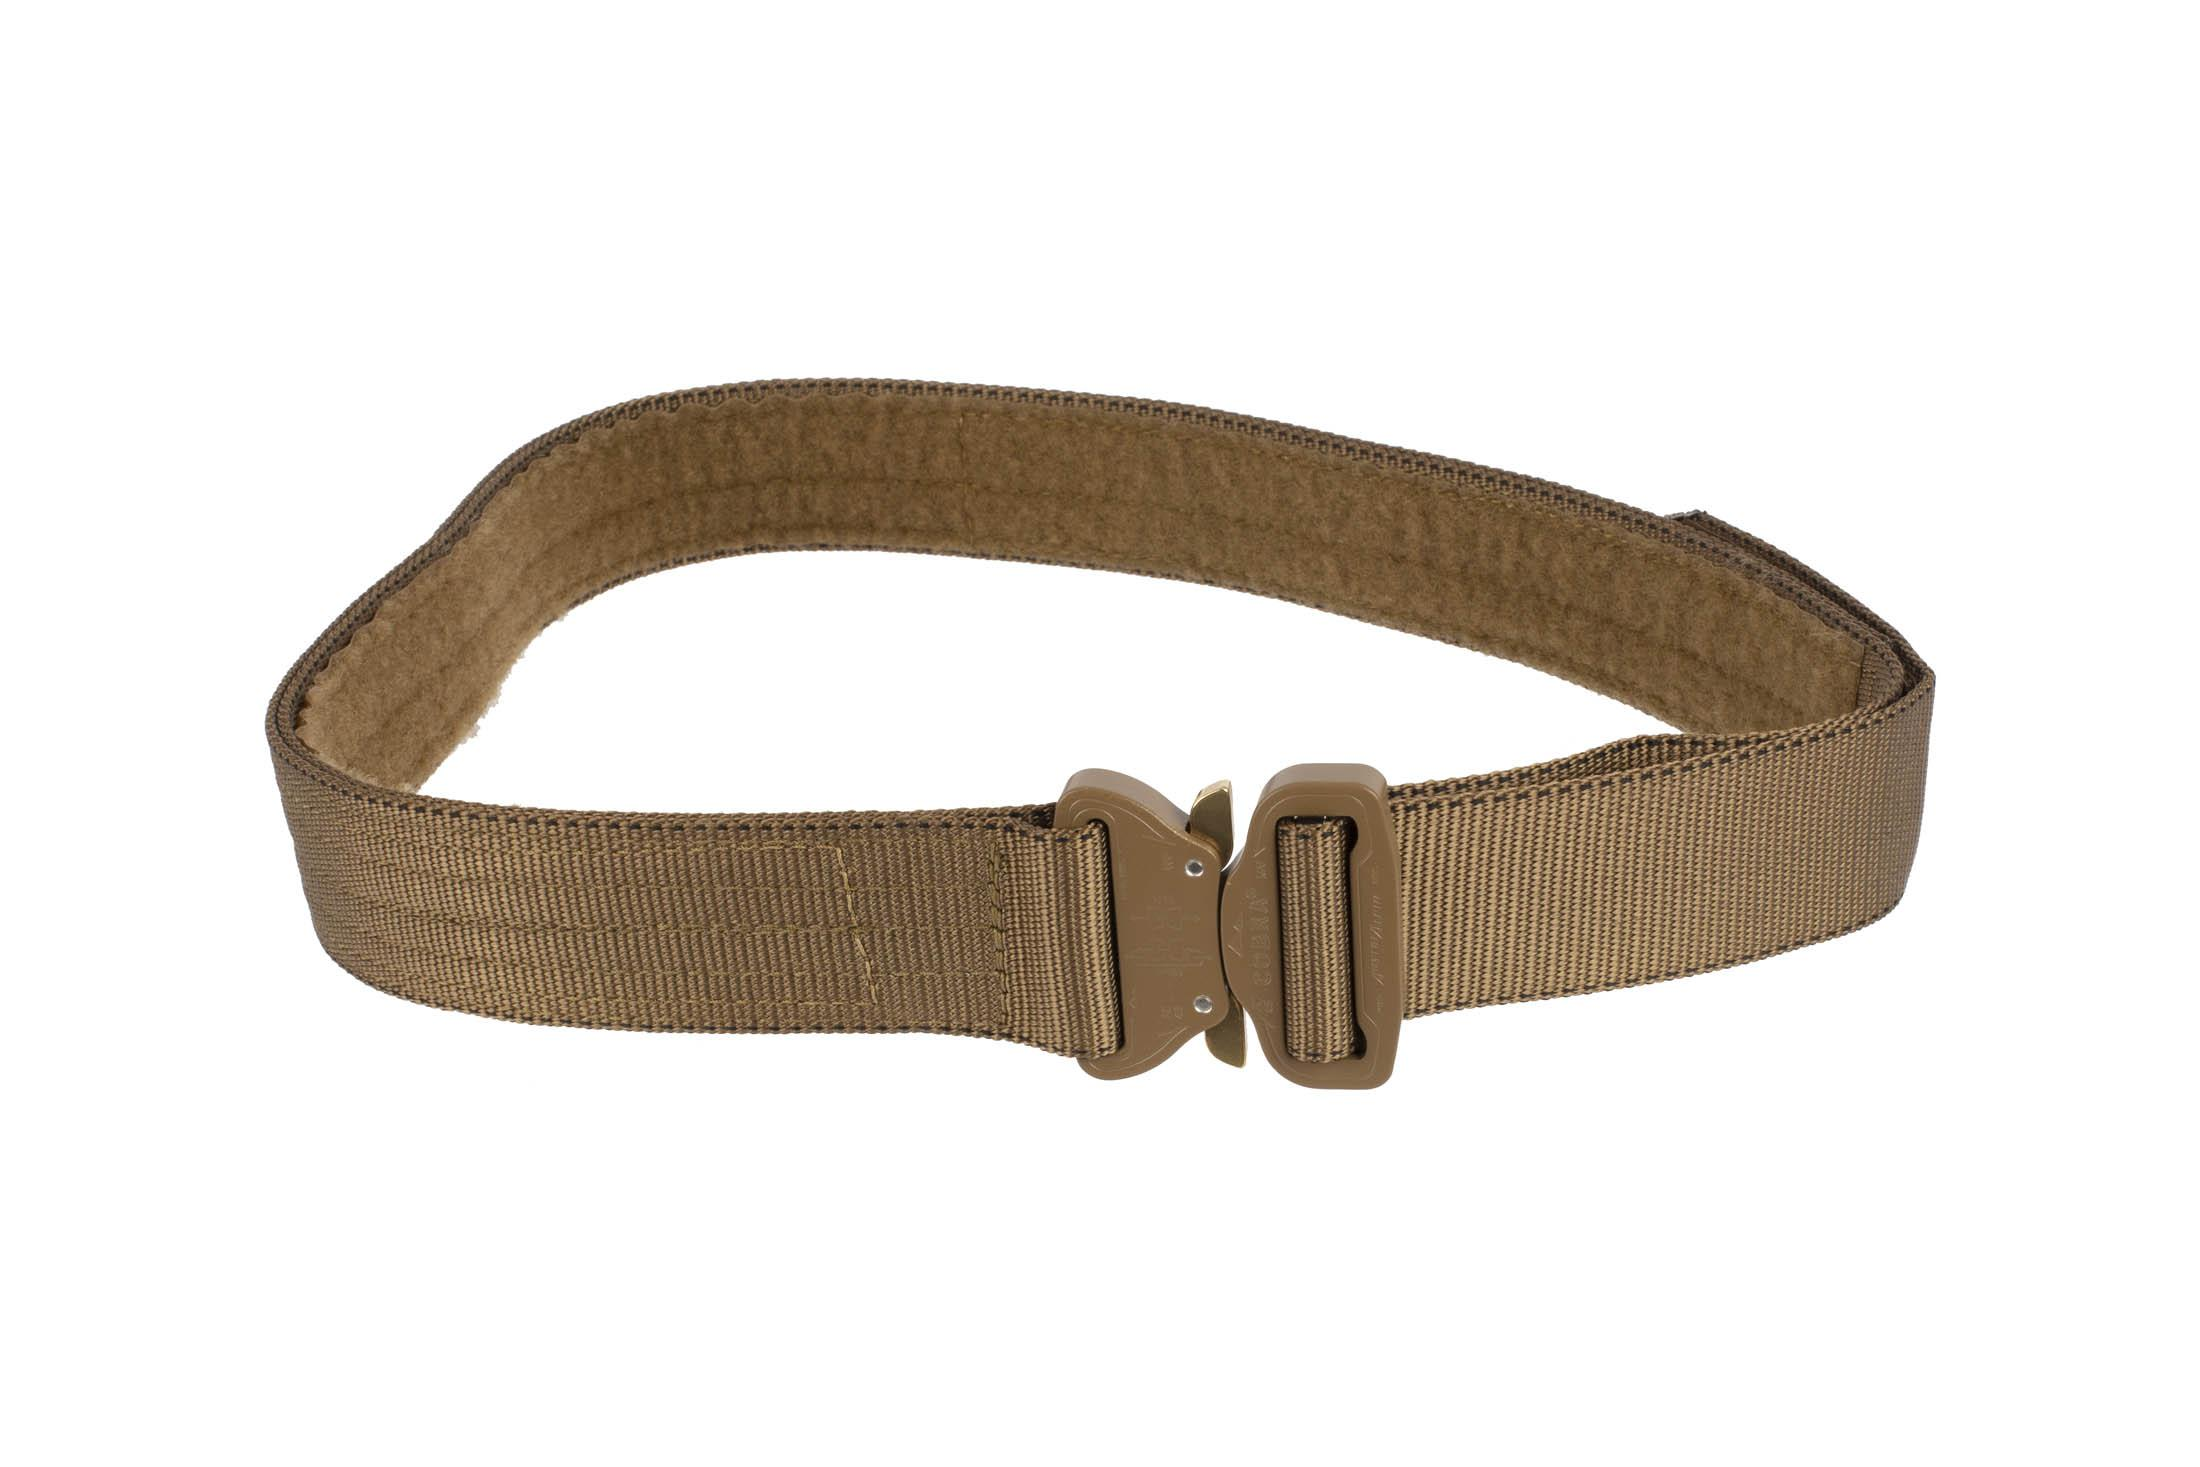 High Speed Gear 1.75in Rigger Belt coyote brown is equipped with a medium Cobra Buckle.